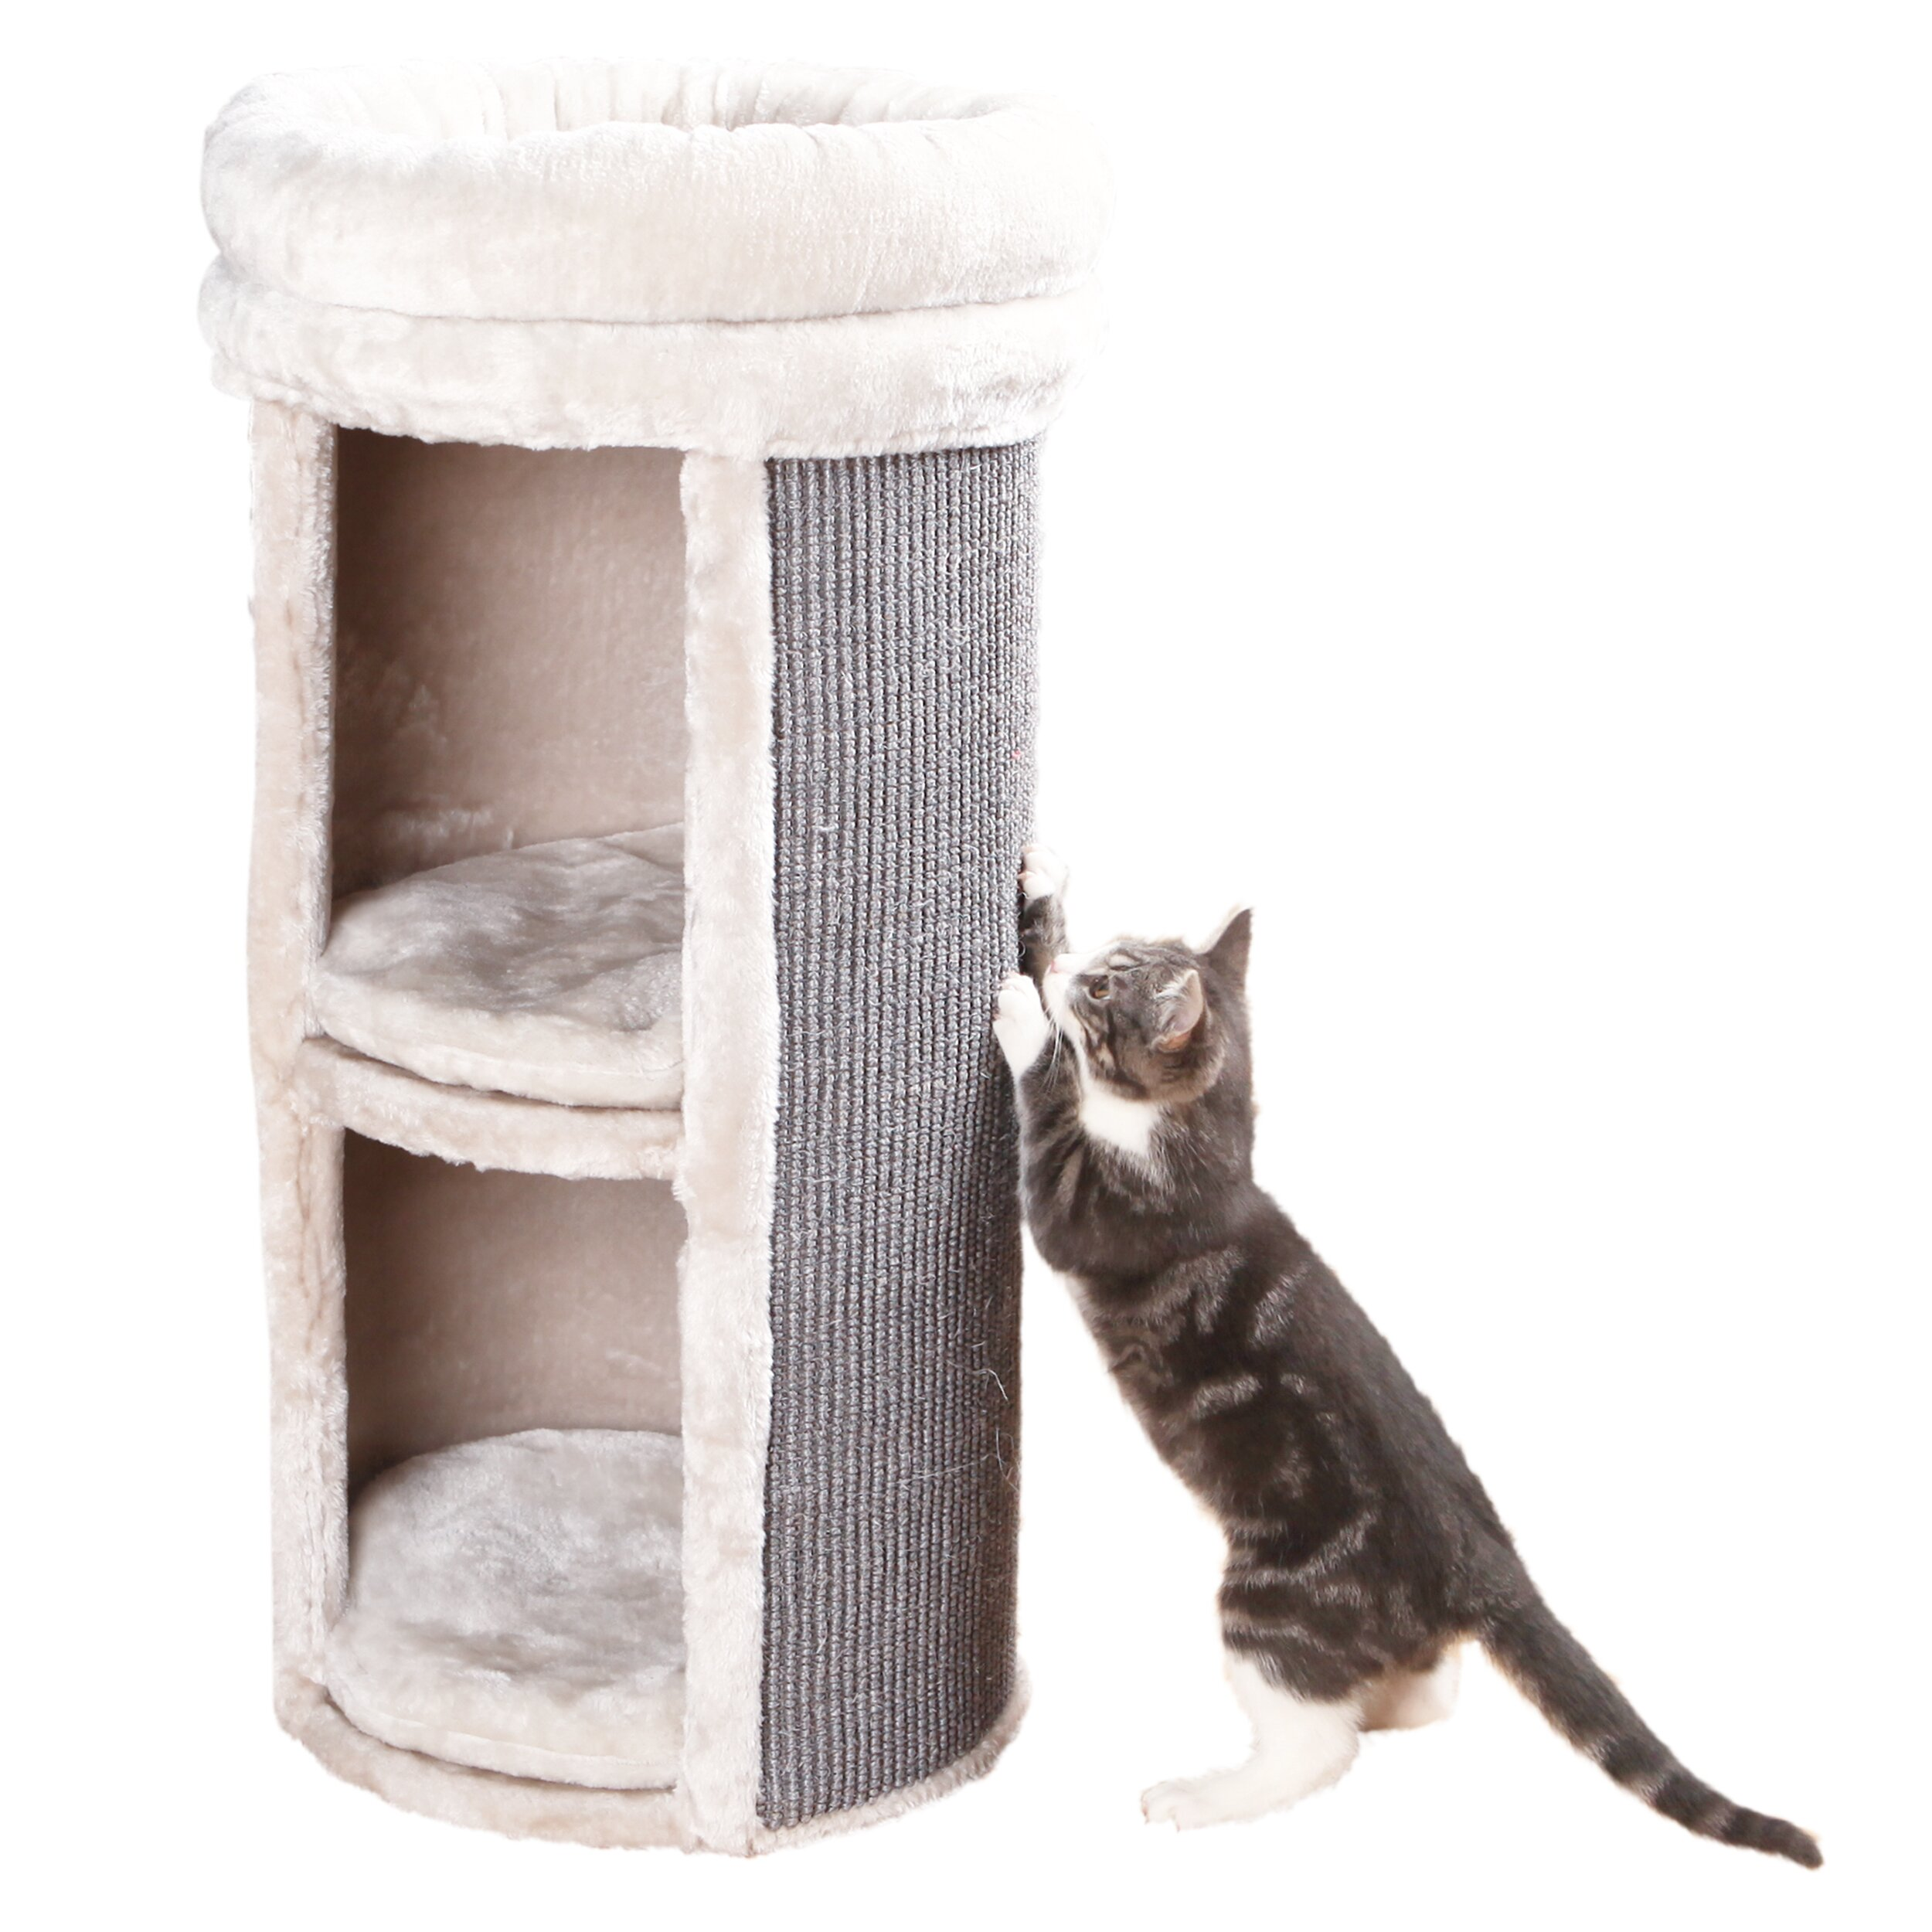 Mexia 2 Story Cat Tower Scratching Post 4440 TXI1342 likewise Roll Only Weaves in addition Fleas And Ticks A Problem besides Dream Room besides Fleas On Humans blogspot. on cat scratching rugs